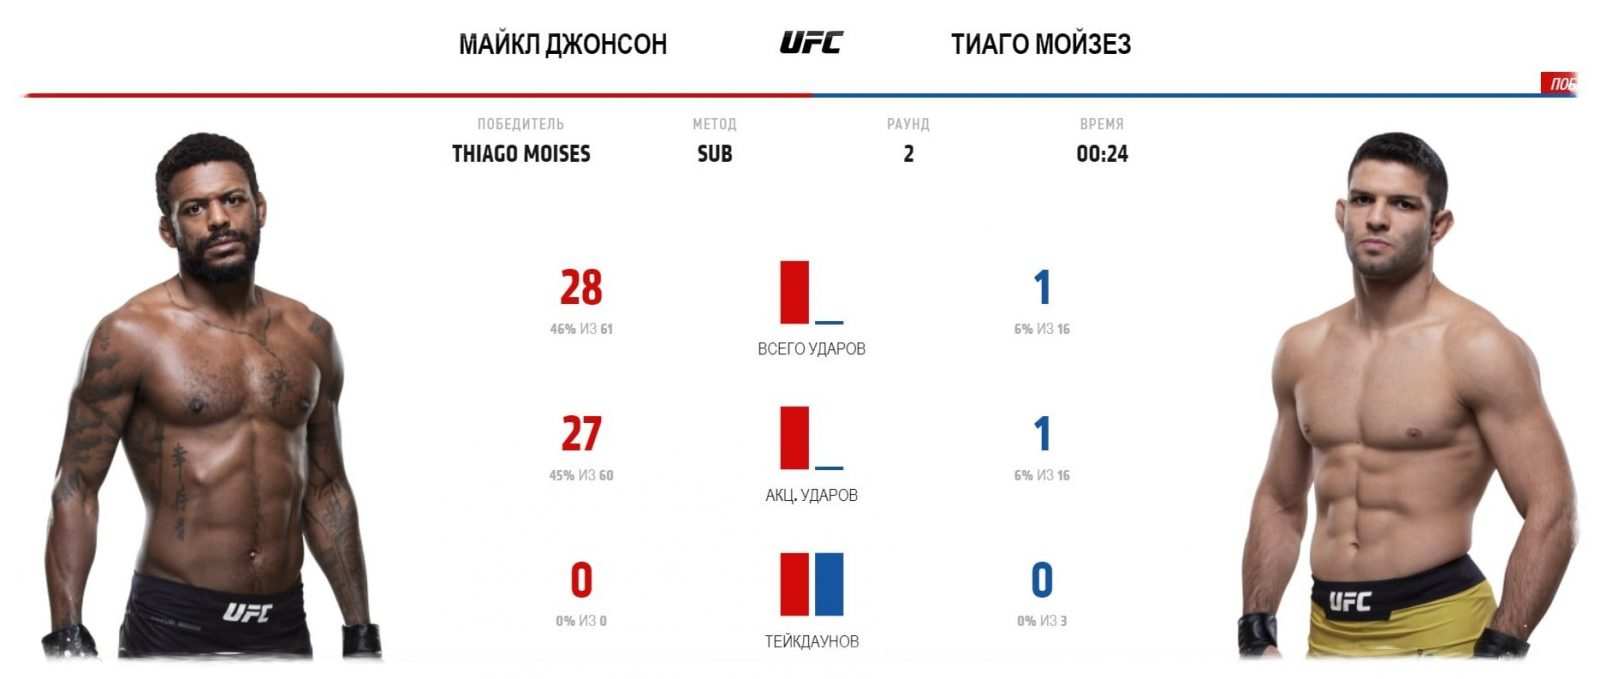 majkl-dzhonson-tiago-mojzes-video-boya-ufc-fight-night-smith-vs-teixeira